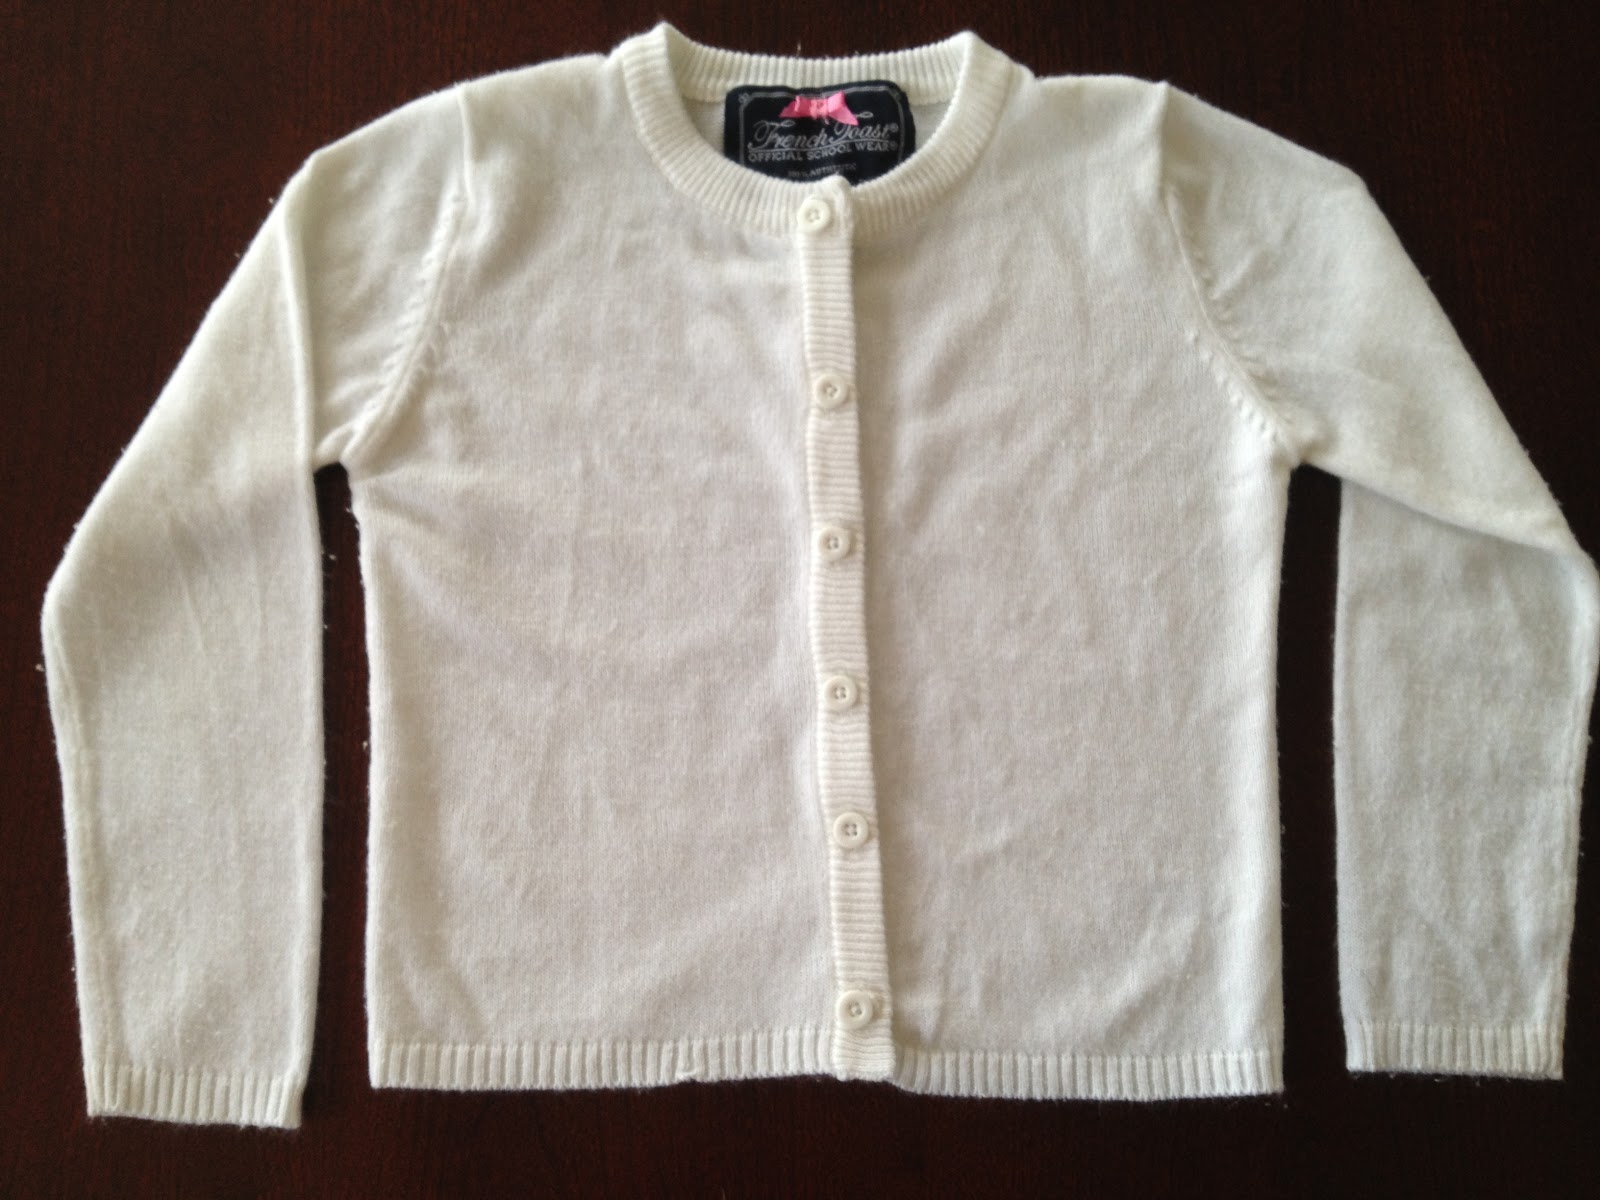 Fine Gauge Knit Cardigan Sweater from French Toast